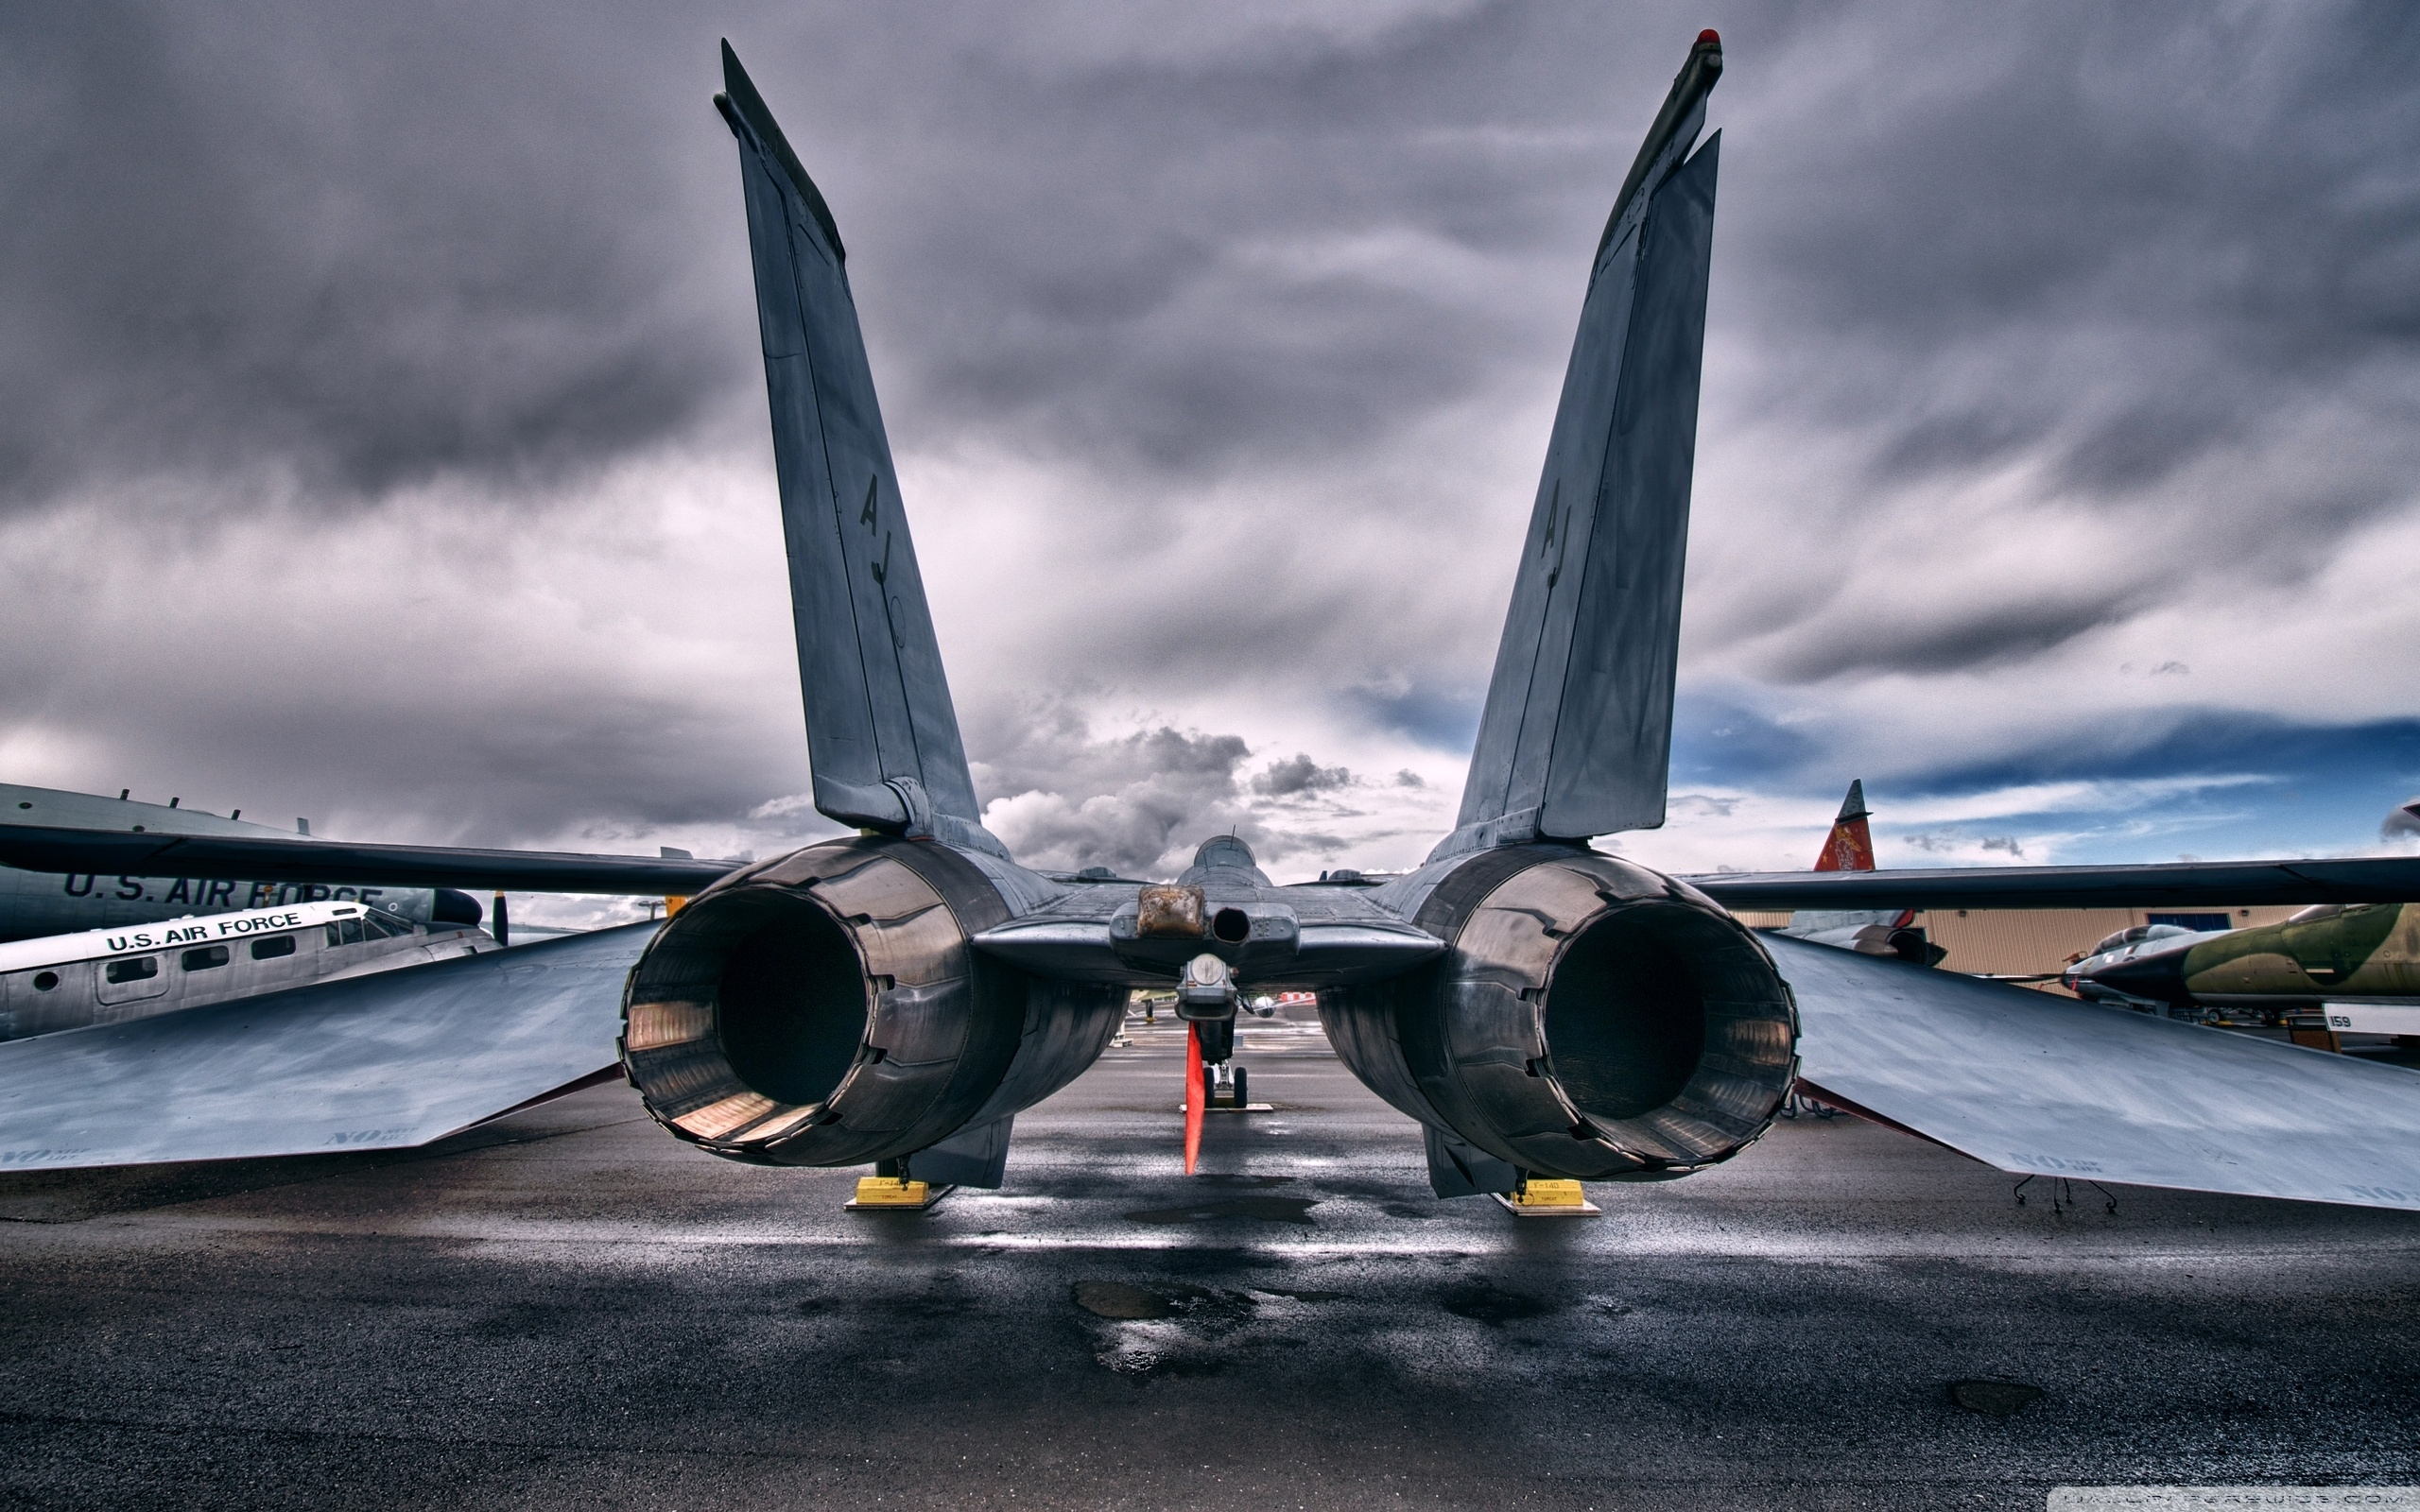 10 New United States Air Force Wallpapers FULL HD 1080p For PC Background